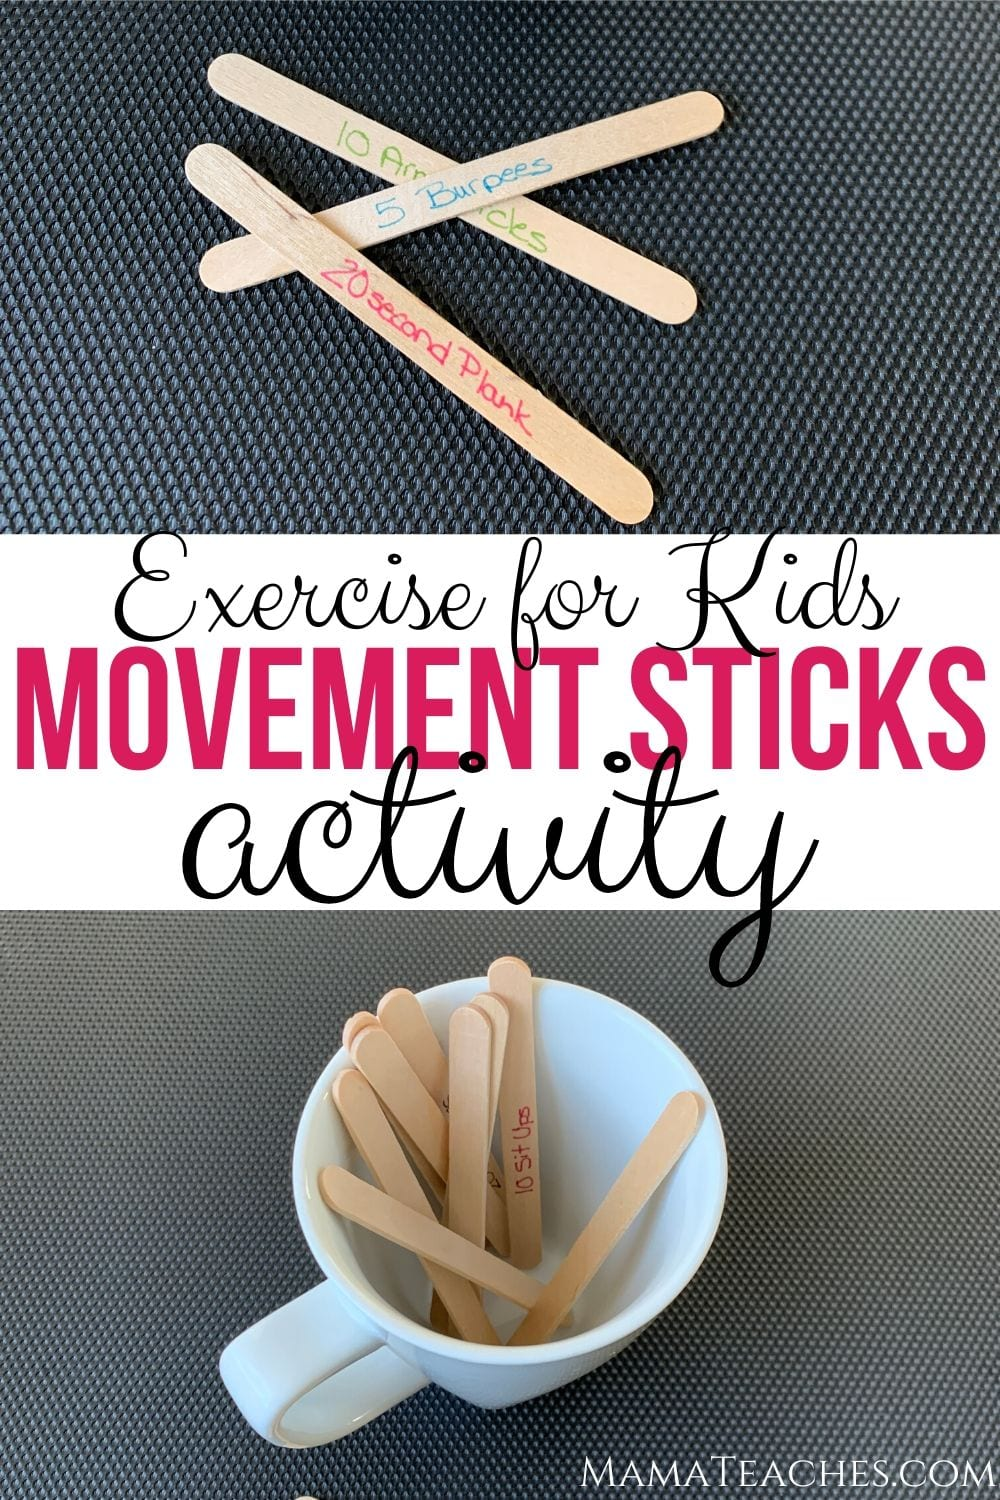 Exercise for Kids Movement Sticks Activity from MamaTeaches.com